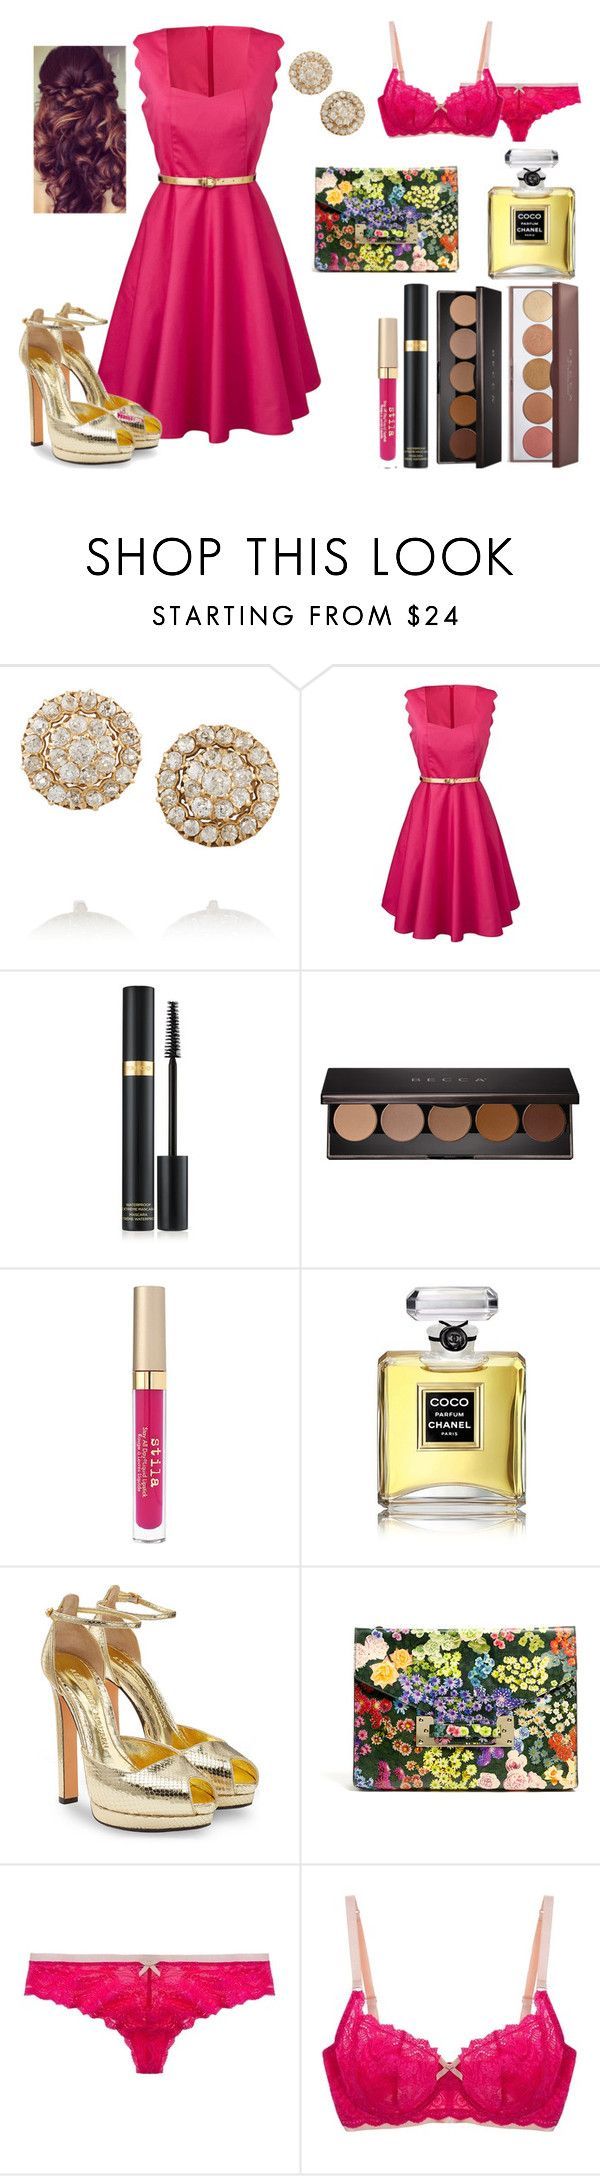 """Untitled #611"" by miss-meghan-elizabeth ❤ liked on Polyvore featuring Fred Leighton, Tom Ford, Becca, Stila, Chanel, Alexander McQueen, Sophie Hulme and Elle Macpherson Intimates"